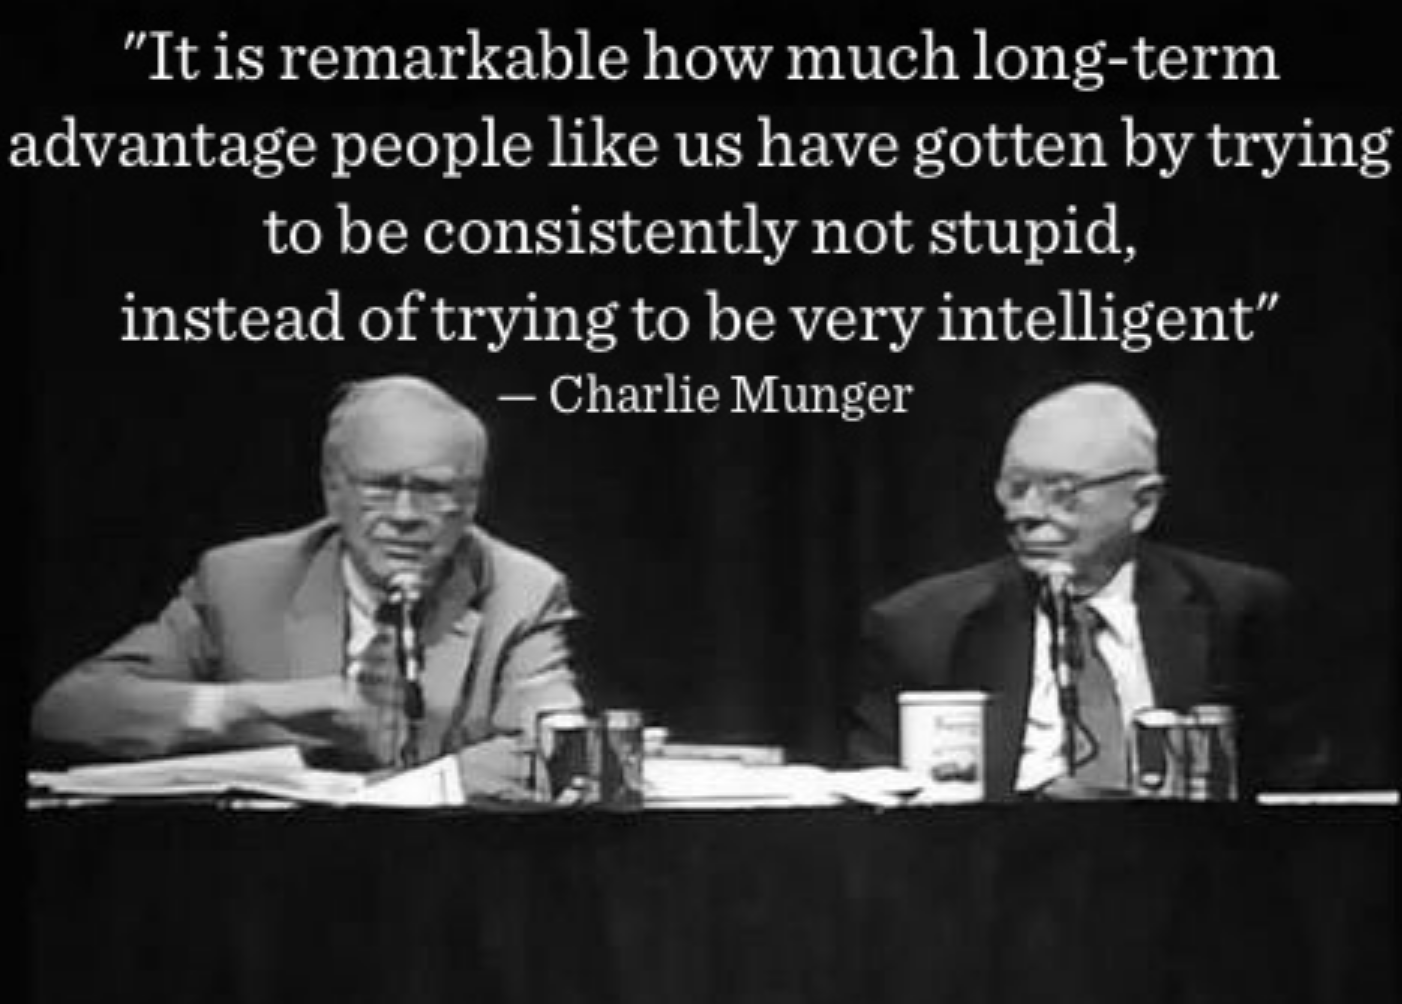 Charlie Munger not be stupid